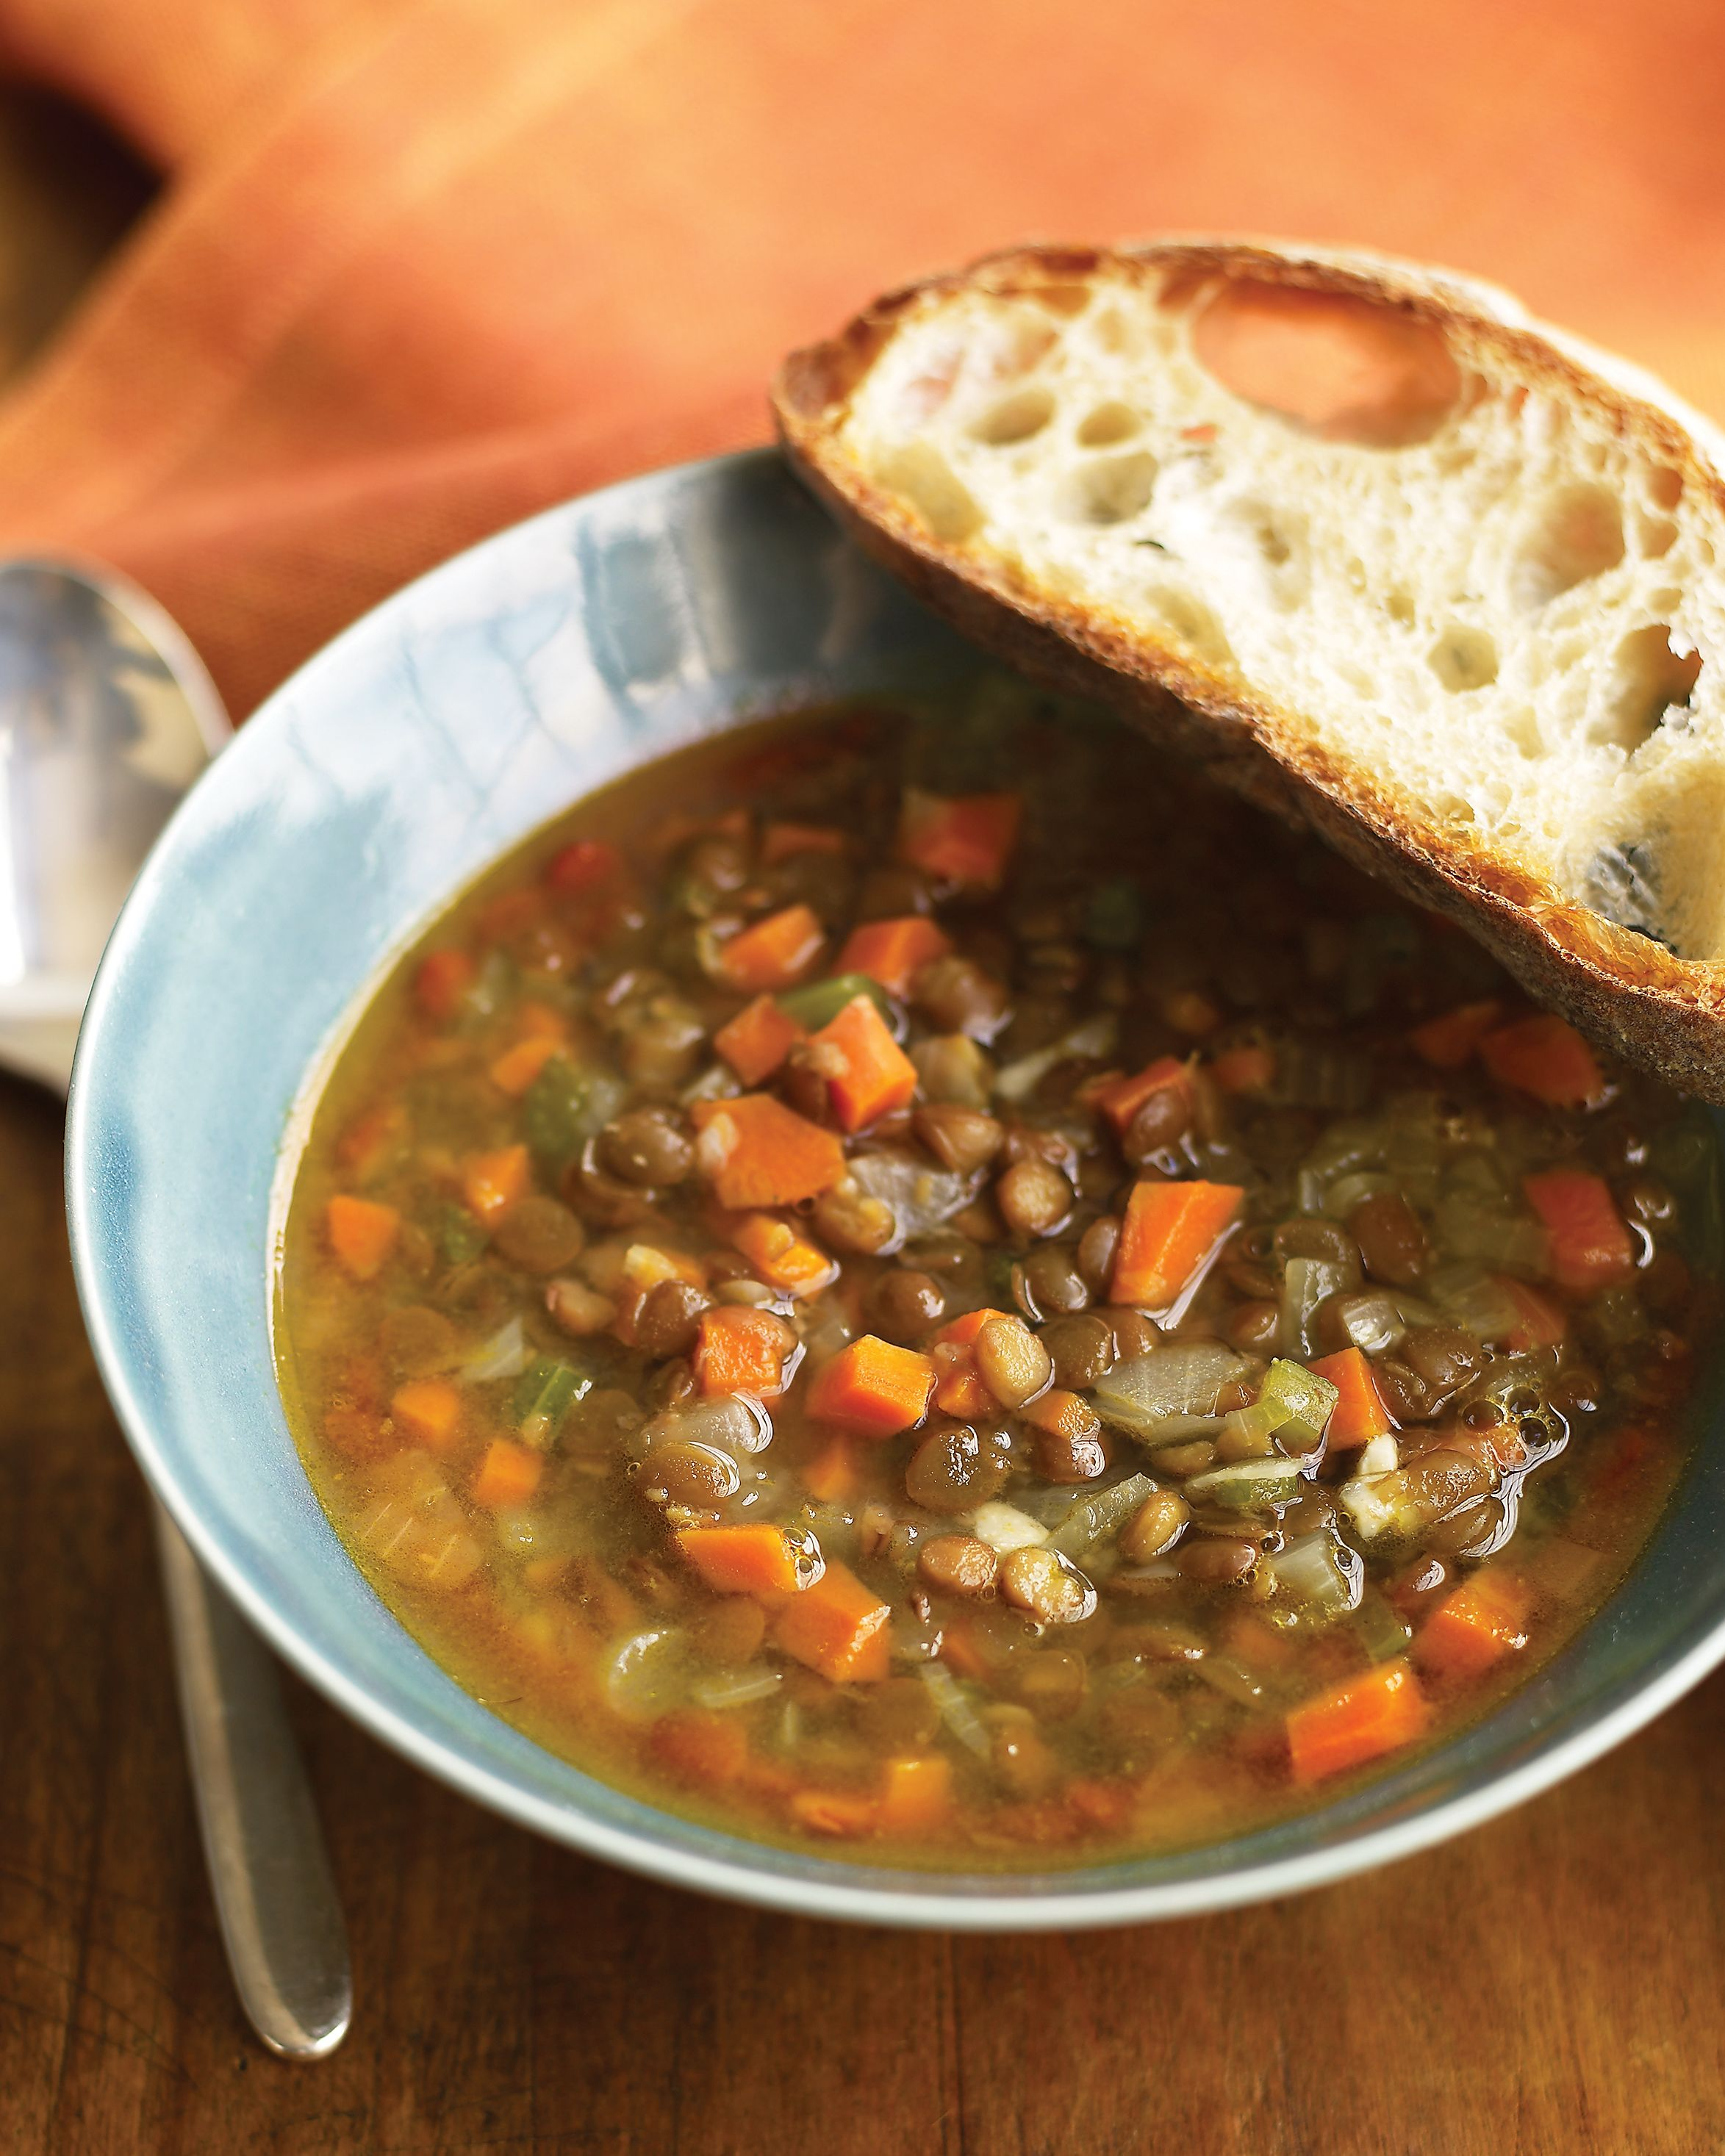 15-Minute Lentil Soup | Martha Stewart - This is a fast, hearty soup for dinner; vegetarians can use vegetable broth. #simplesoups #heartyfamilydinner